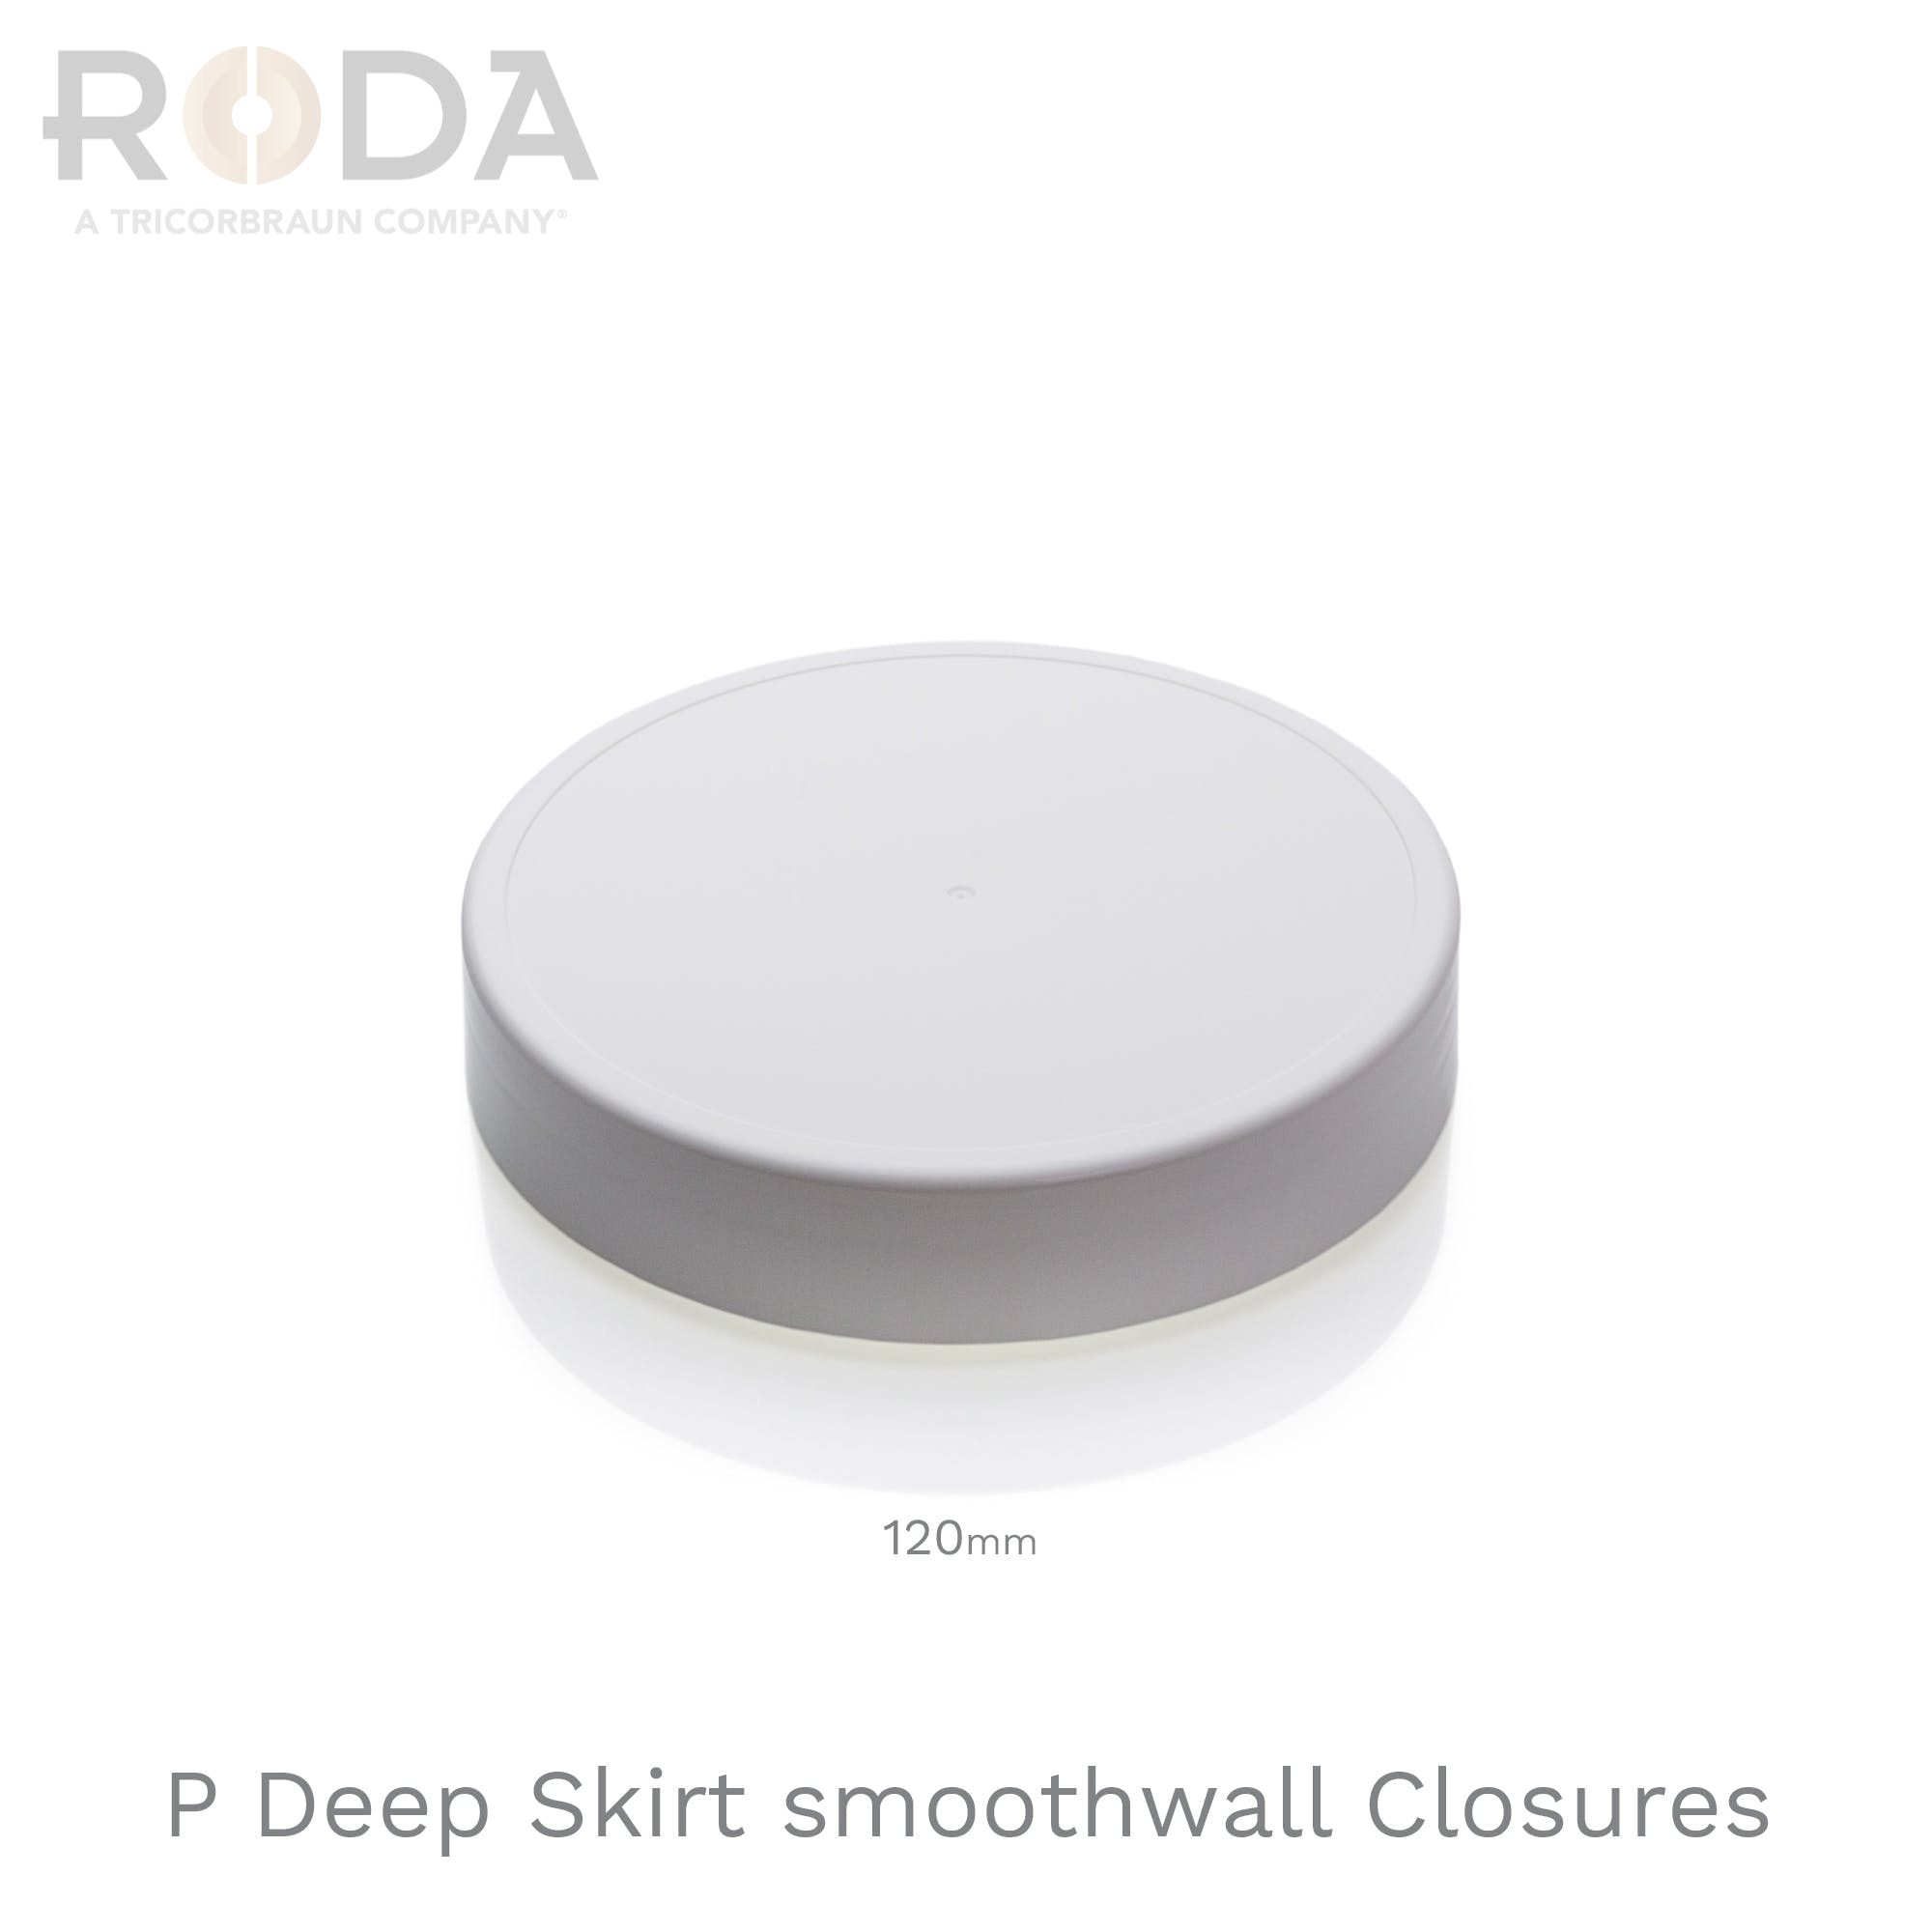 P Deep Skirt Smoothwall Closures